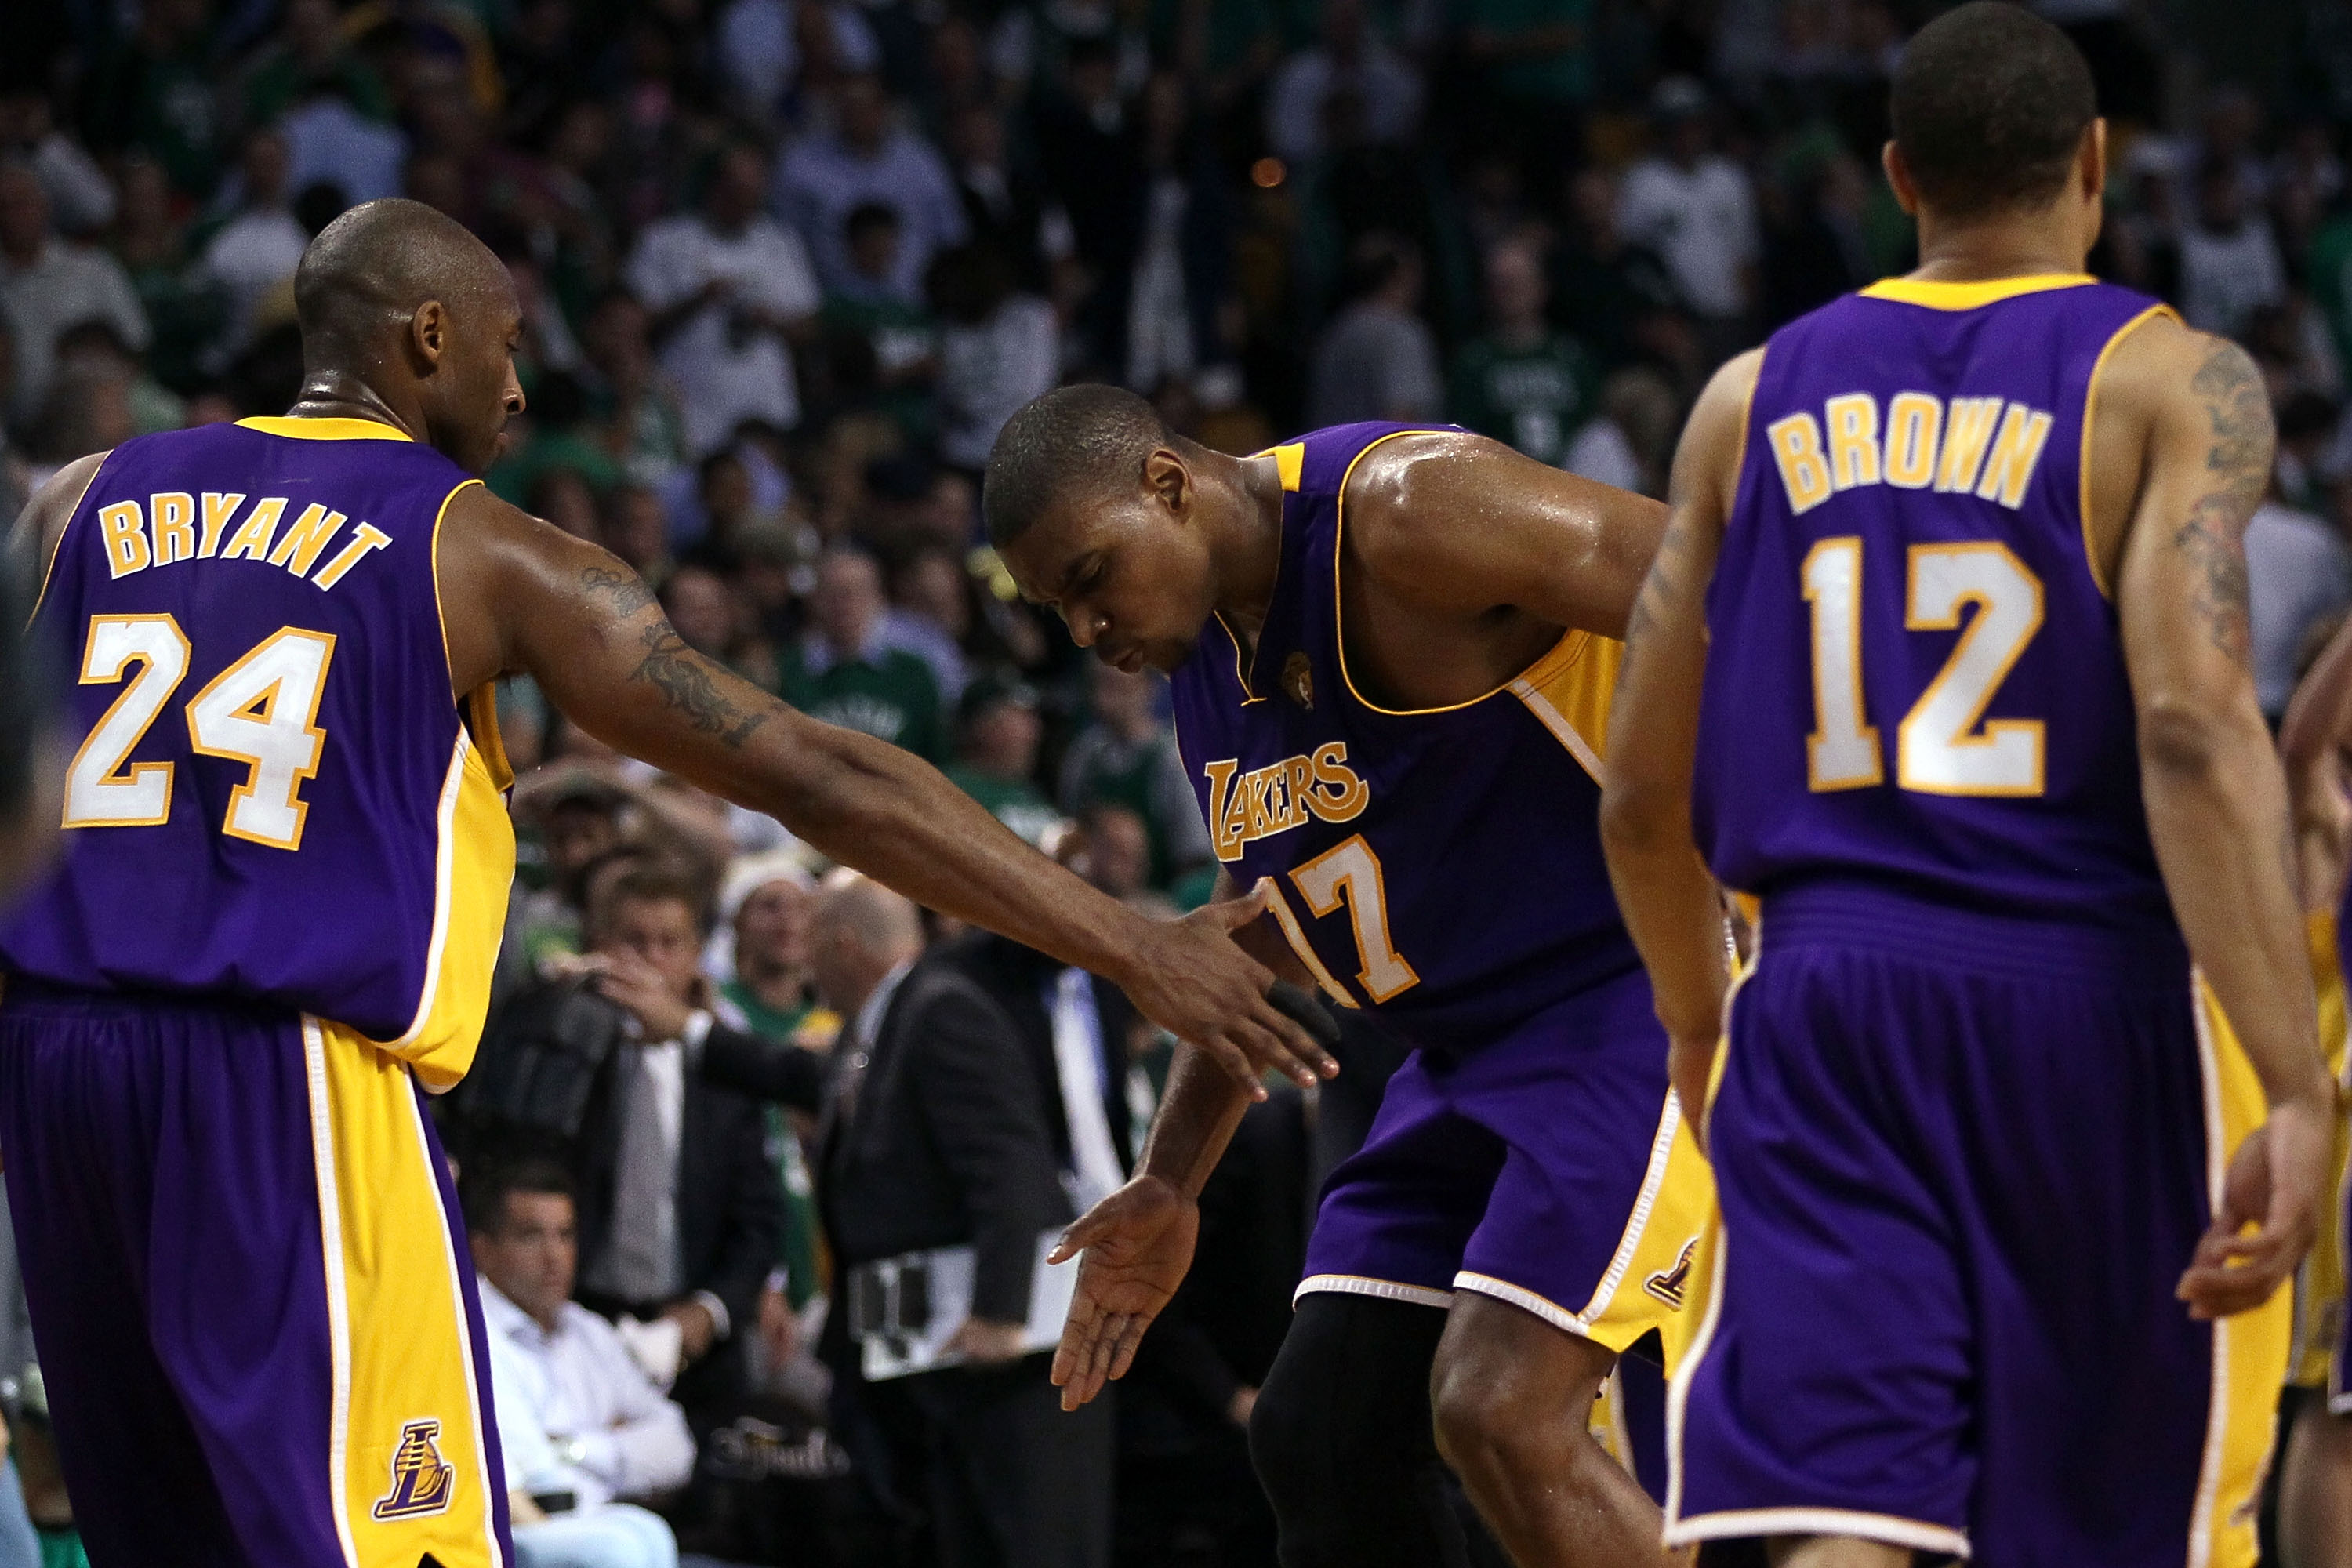 BOSTON - JUNE 08:  Andrew Bynum #17 of the Los Angeles Lakers celebrates a play in the third quarter with teammates Kobe Bryant #24 and Shannon Brown #12 of the Boston Celtics in Game Three of the 2010 NBA Finals on June 8, 2010 at TD Garden in Boston, Ma